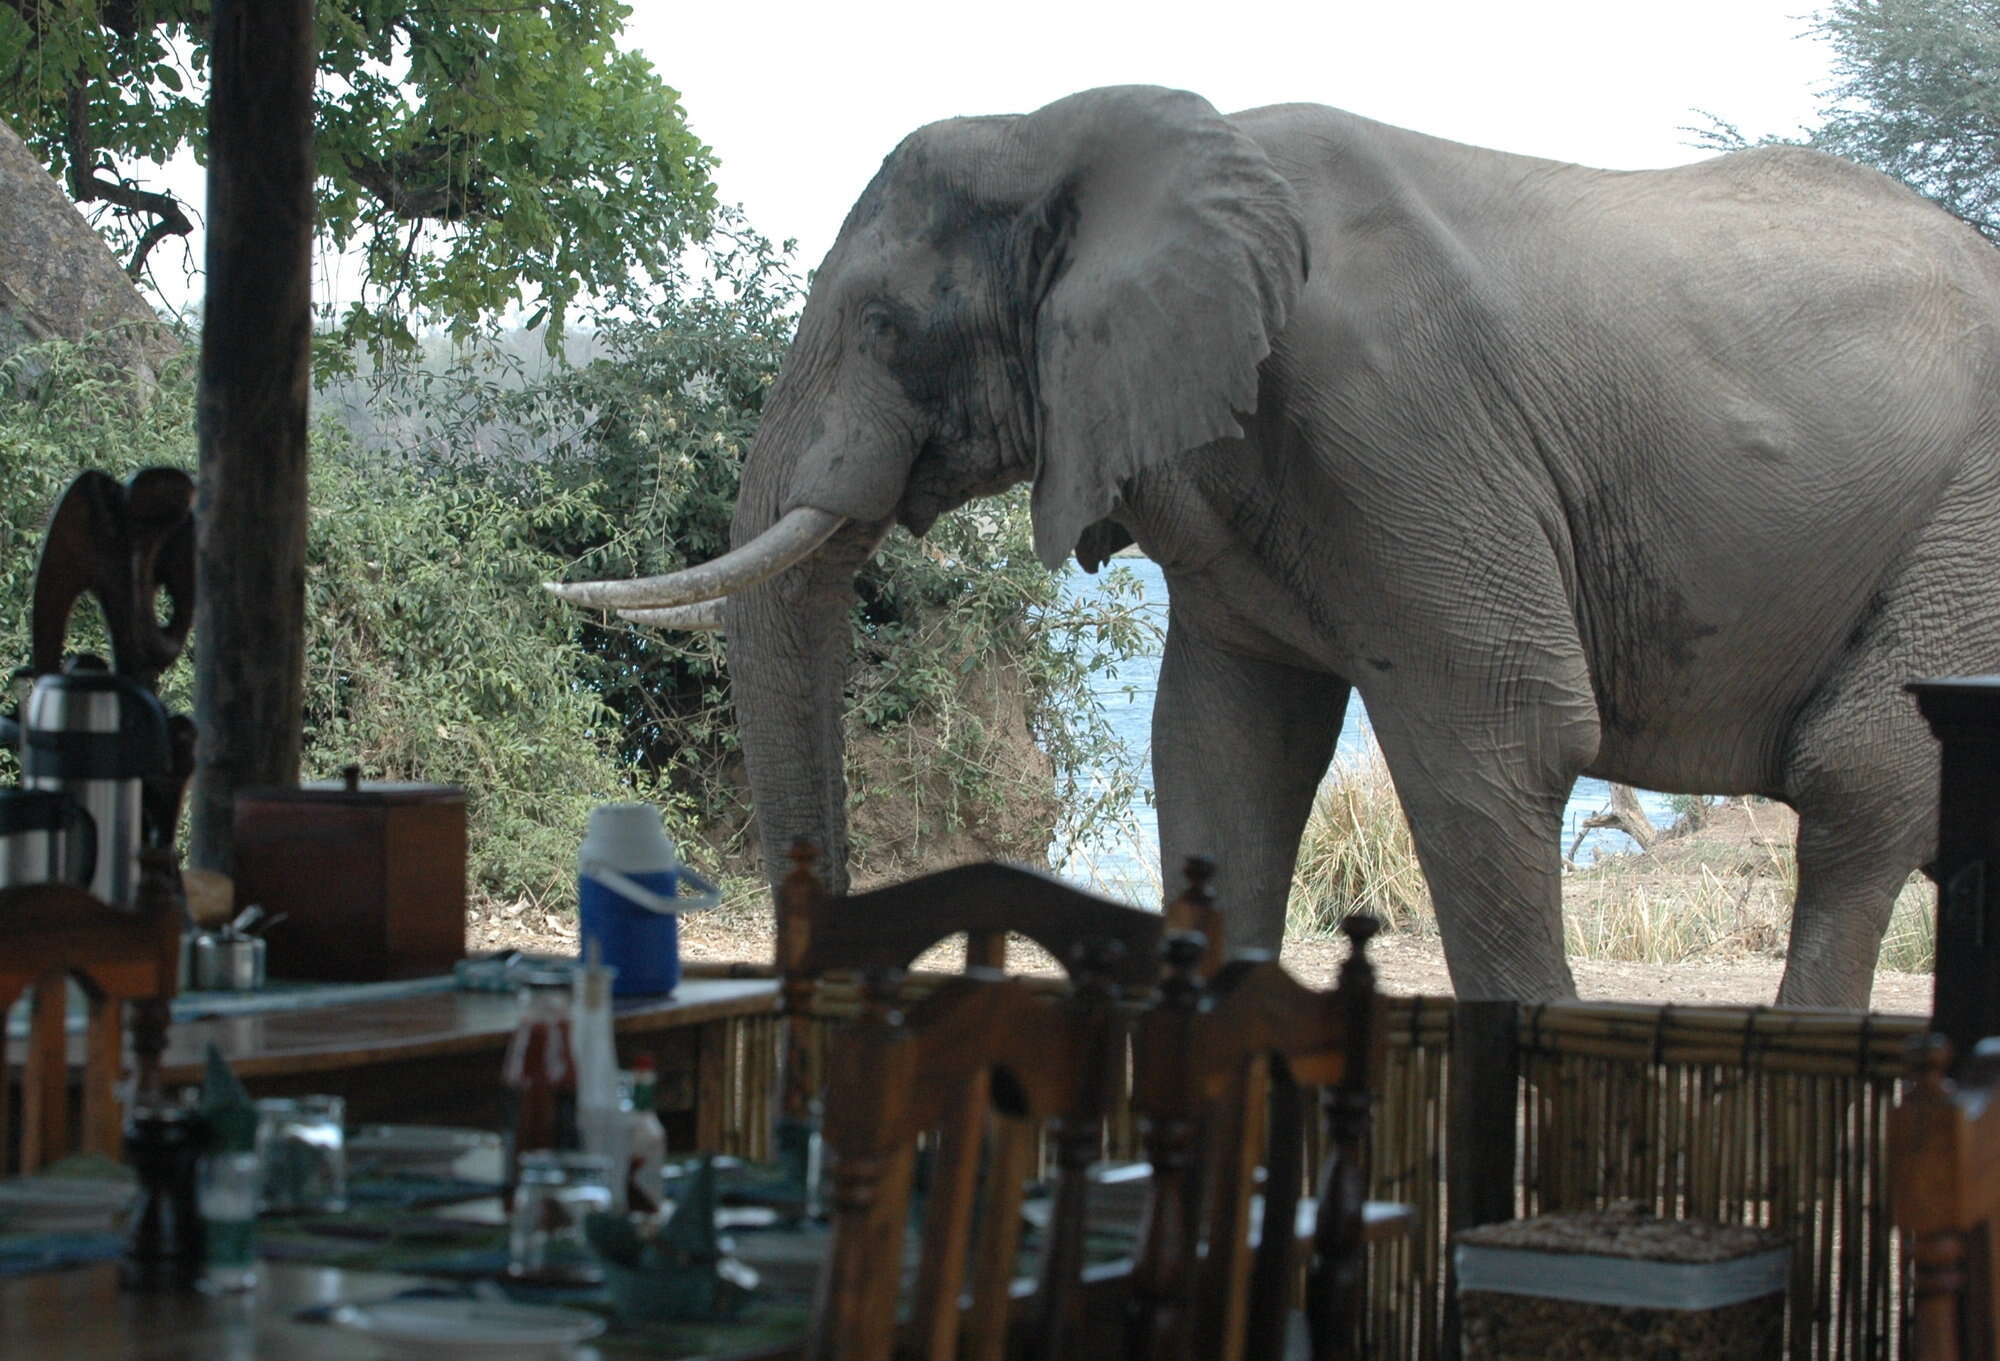 Zambia safari to Lower Zambezi National Park including Chiawa Camp and Old Mondoro Bushcamp.